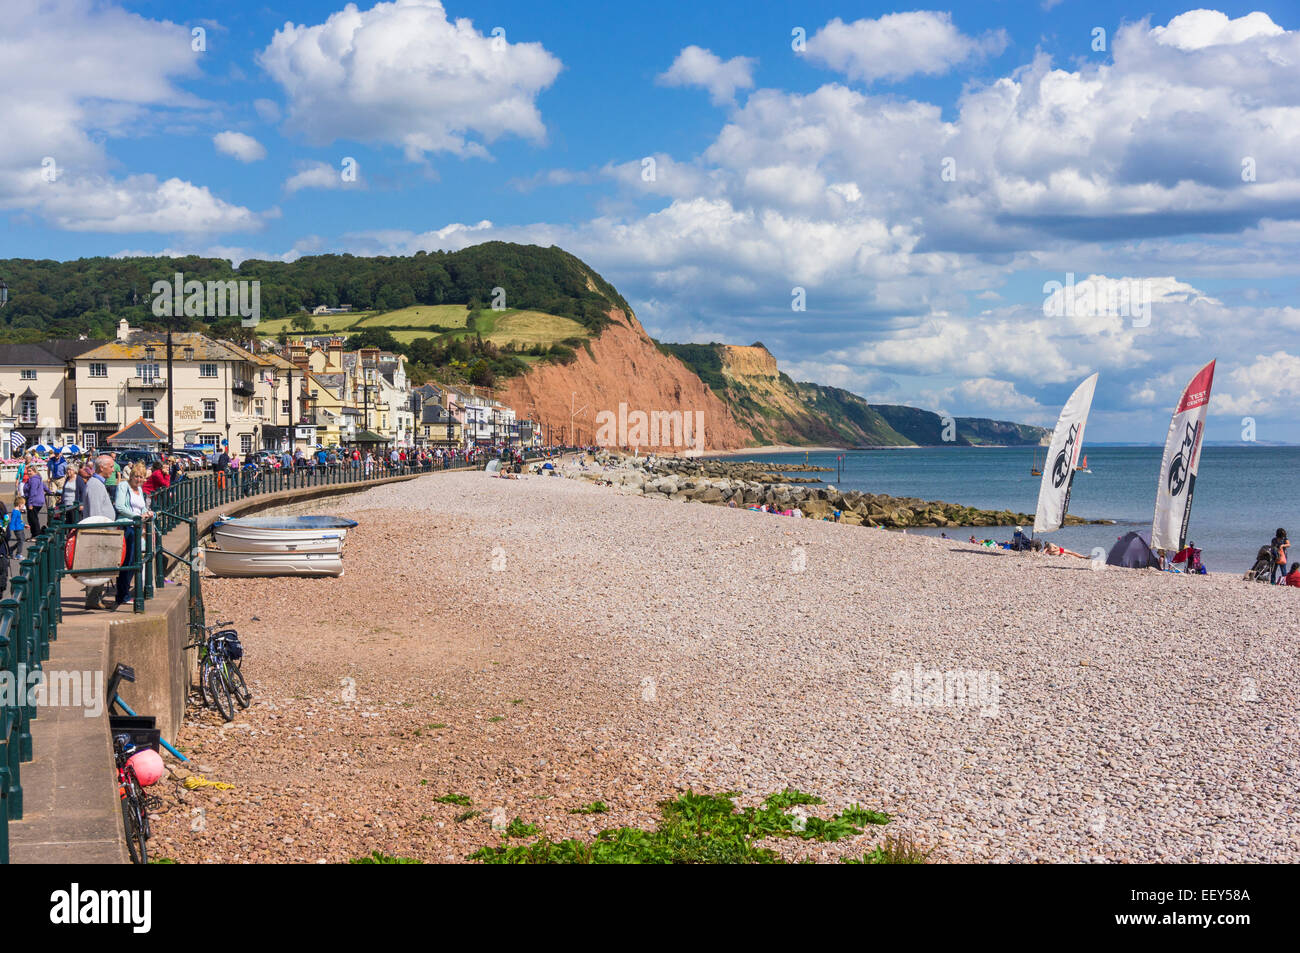 Devon coast - Sidmouth beach, England - Stock Image